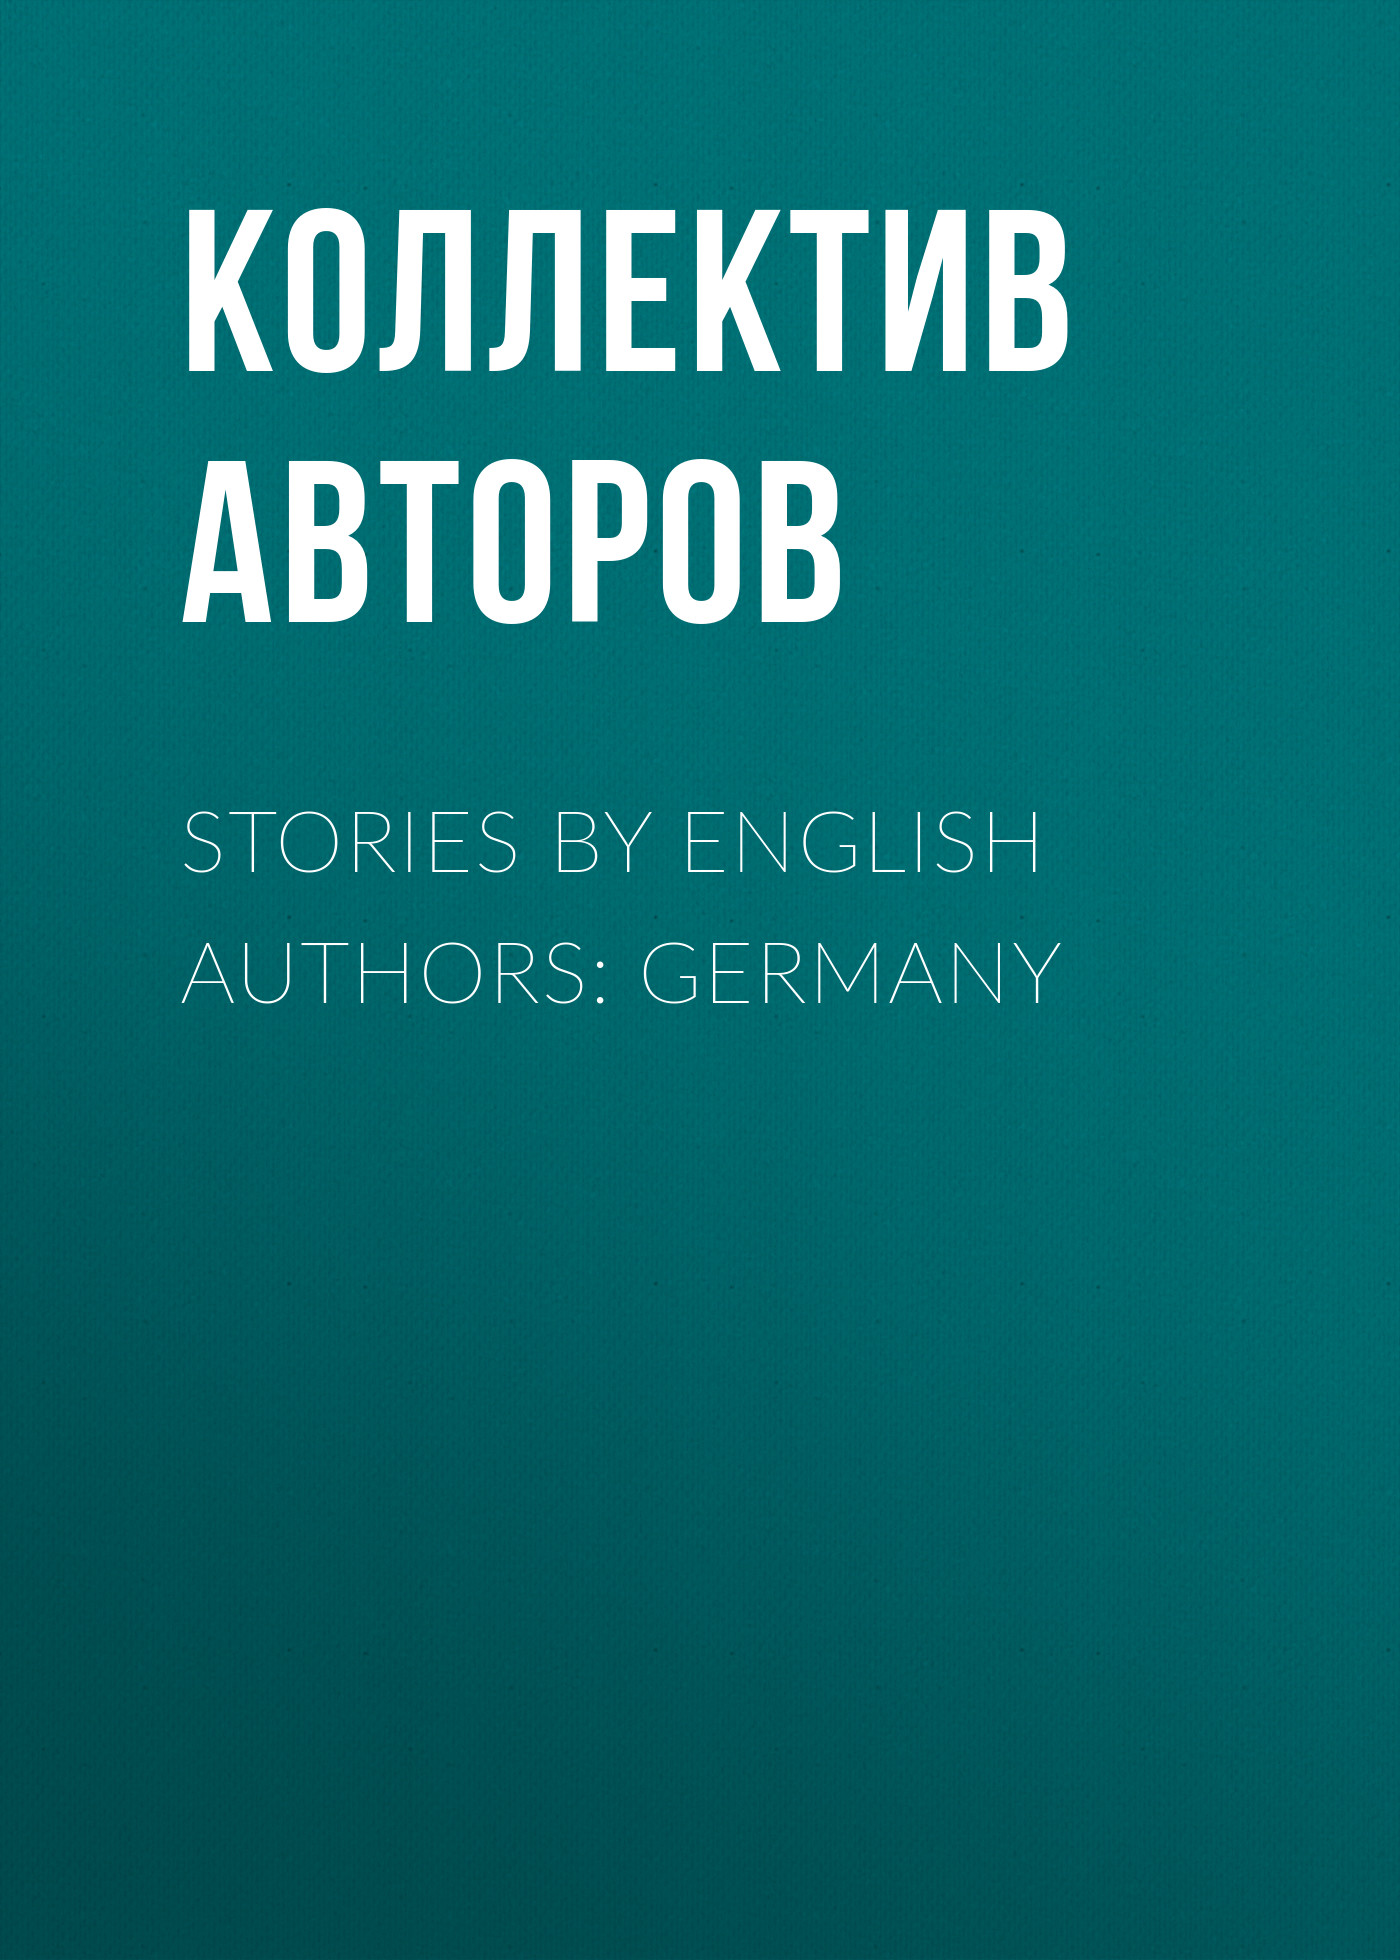 Коллектив авторов Stories by English Authors: Germany коллектив авторов stories by english authors germany